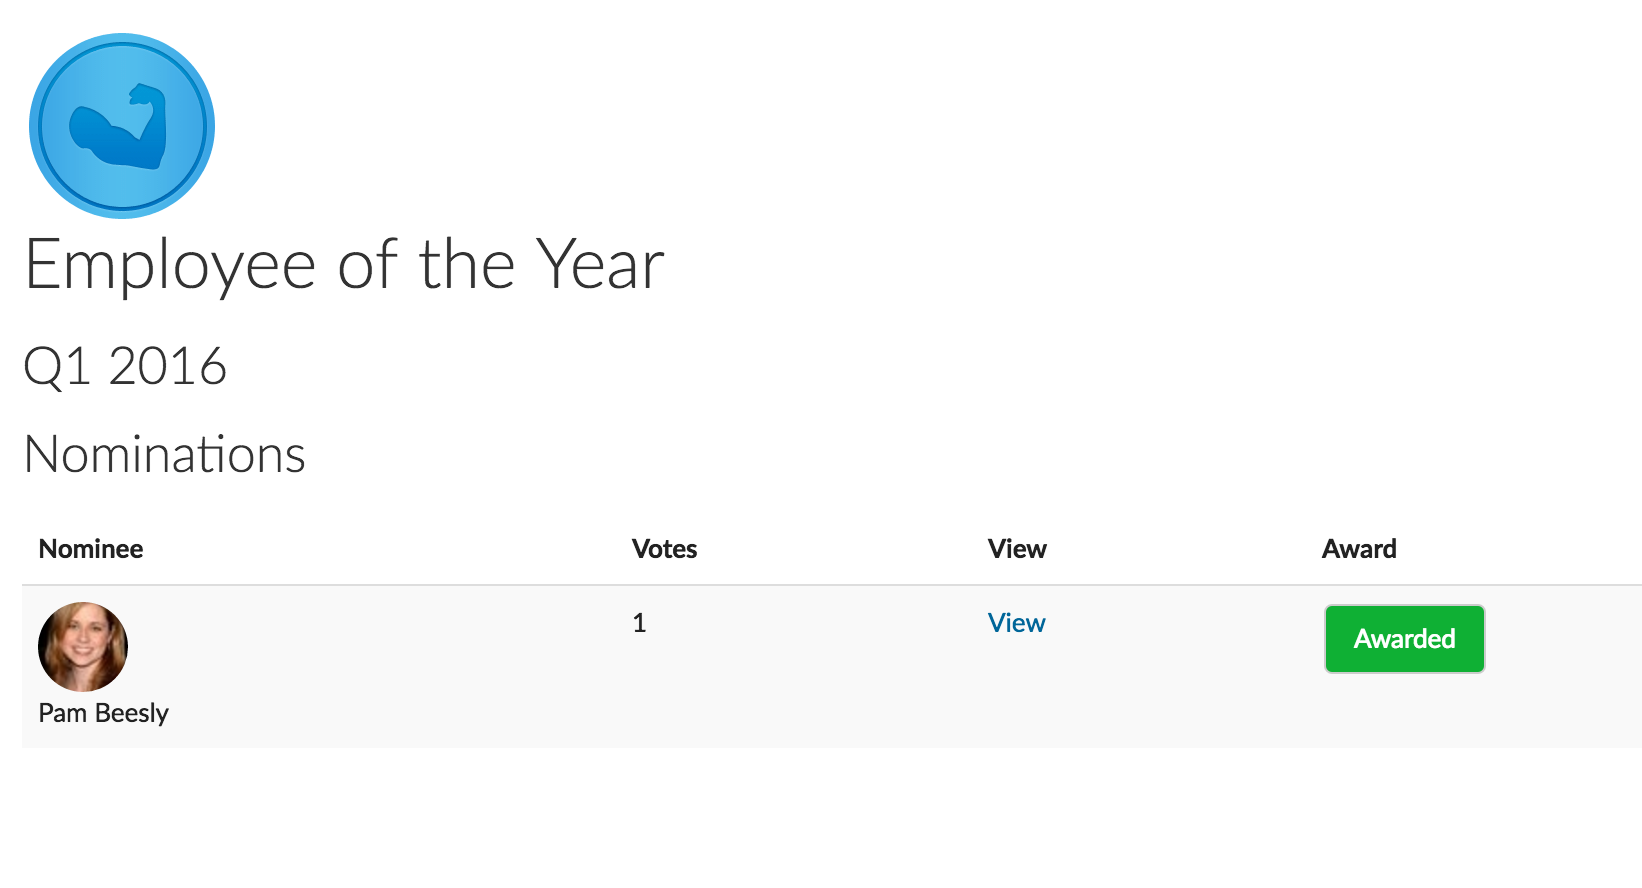 Viewing employee of the year votes